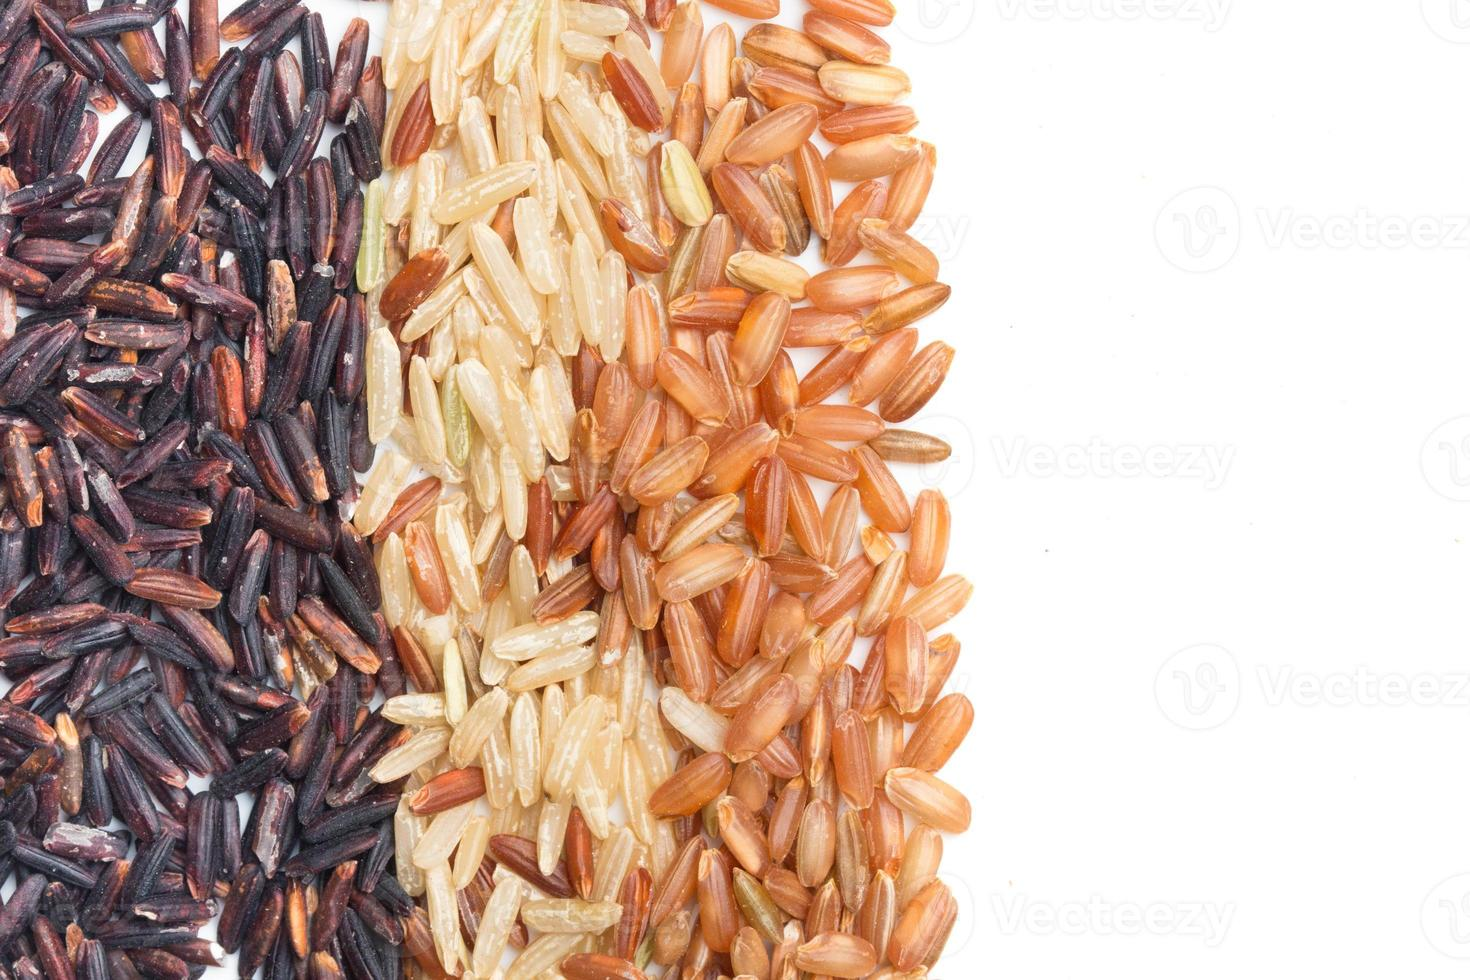 Three variety kinds of brown rice photo